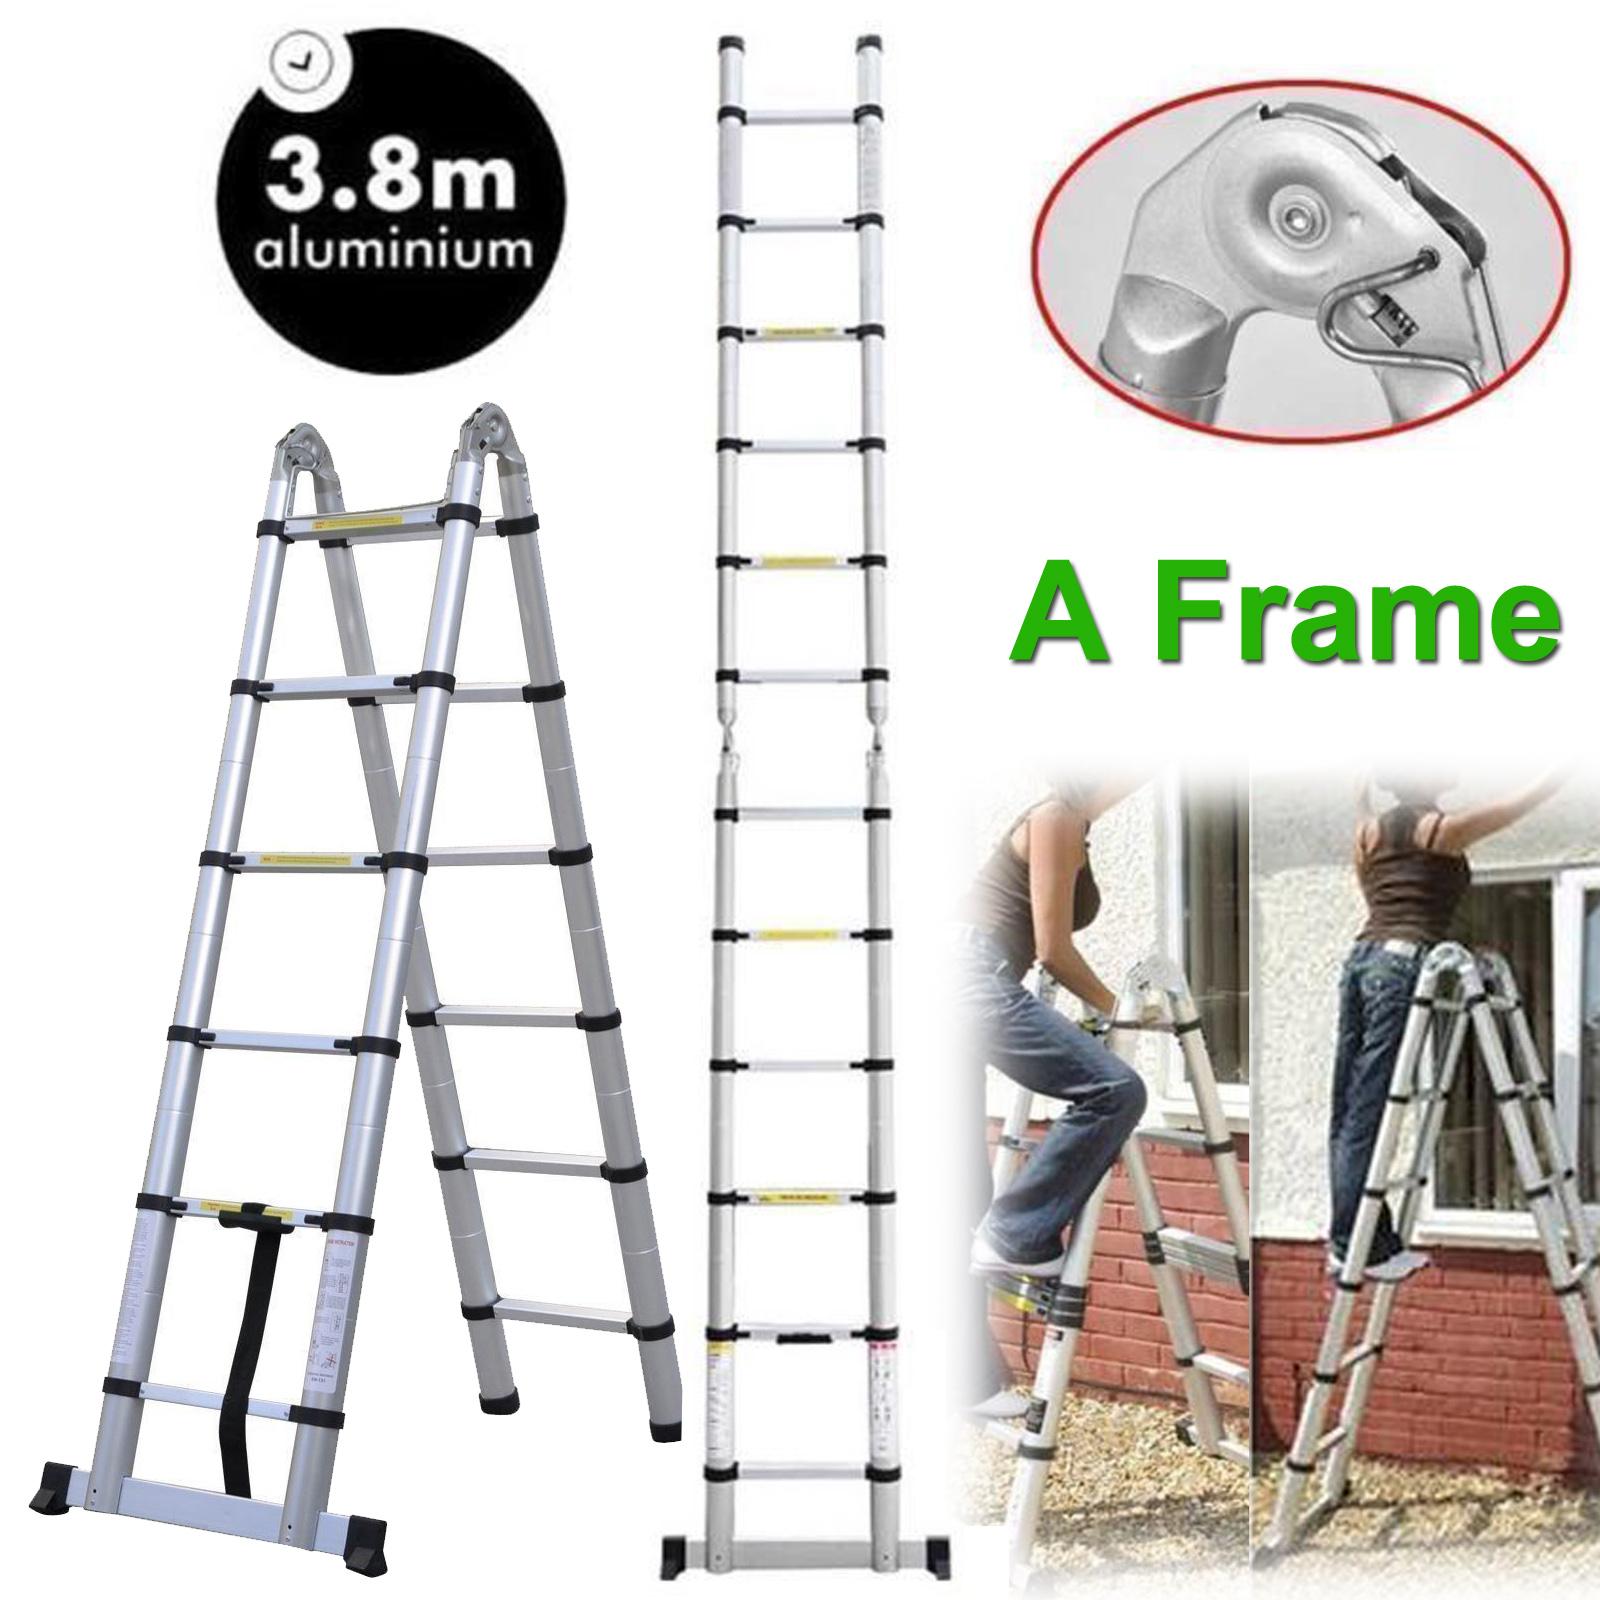 3.8M A Frame Heavy Duty Multi-Purpose Aluminum Telescopic Ladder ...